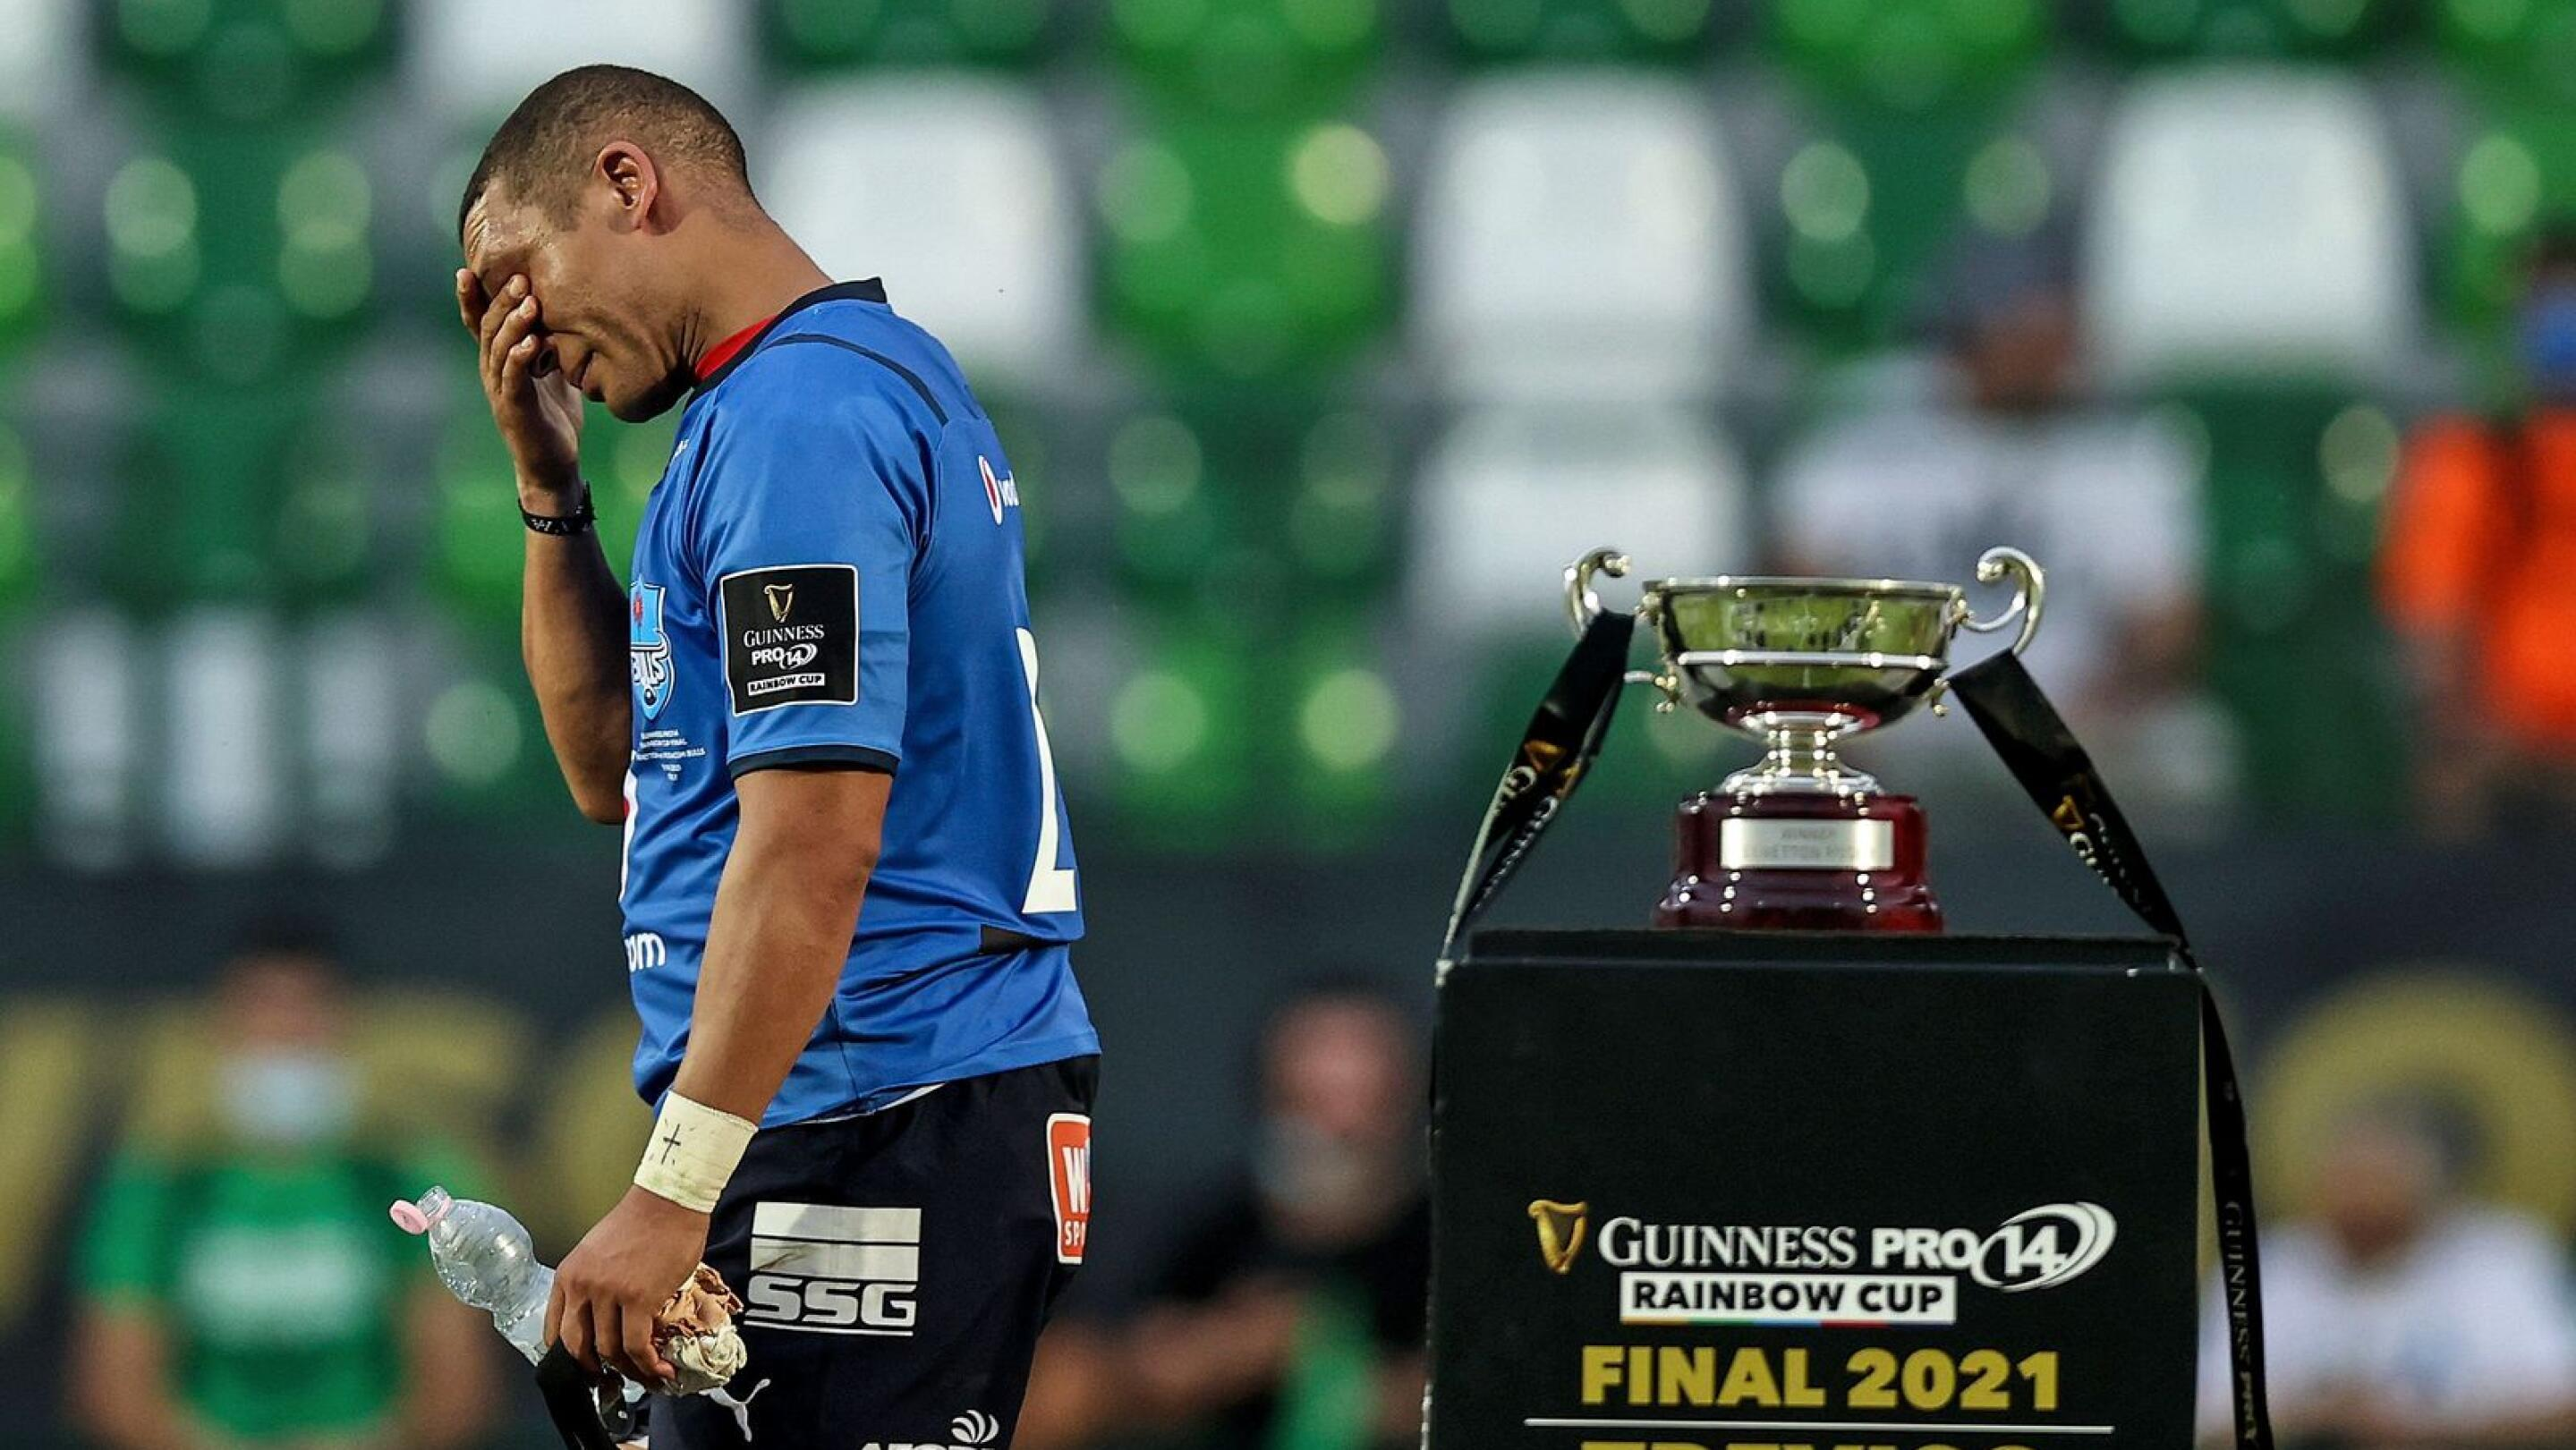 Bulls back Gio Aplon looks dejected after the Rainbow Cup final against Benetton on Saturday evening